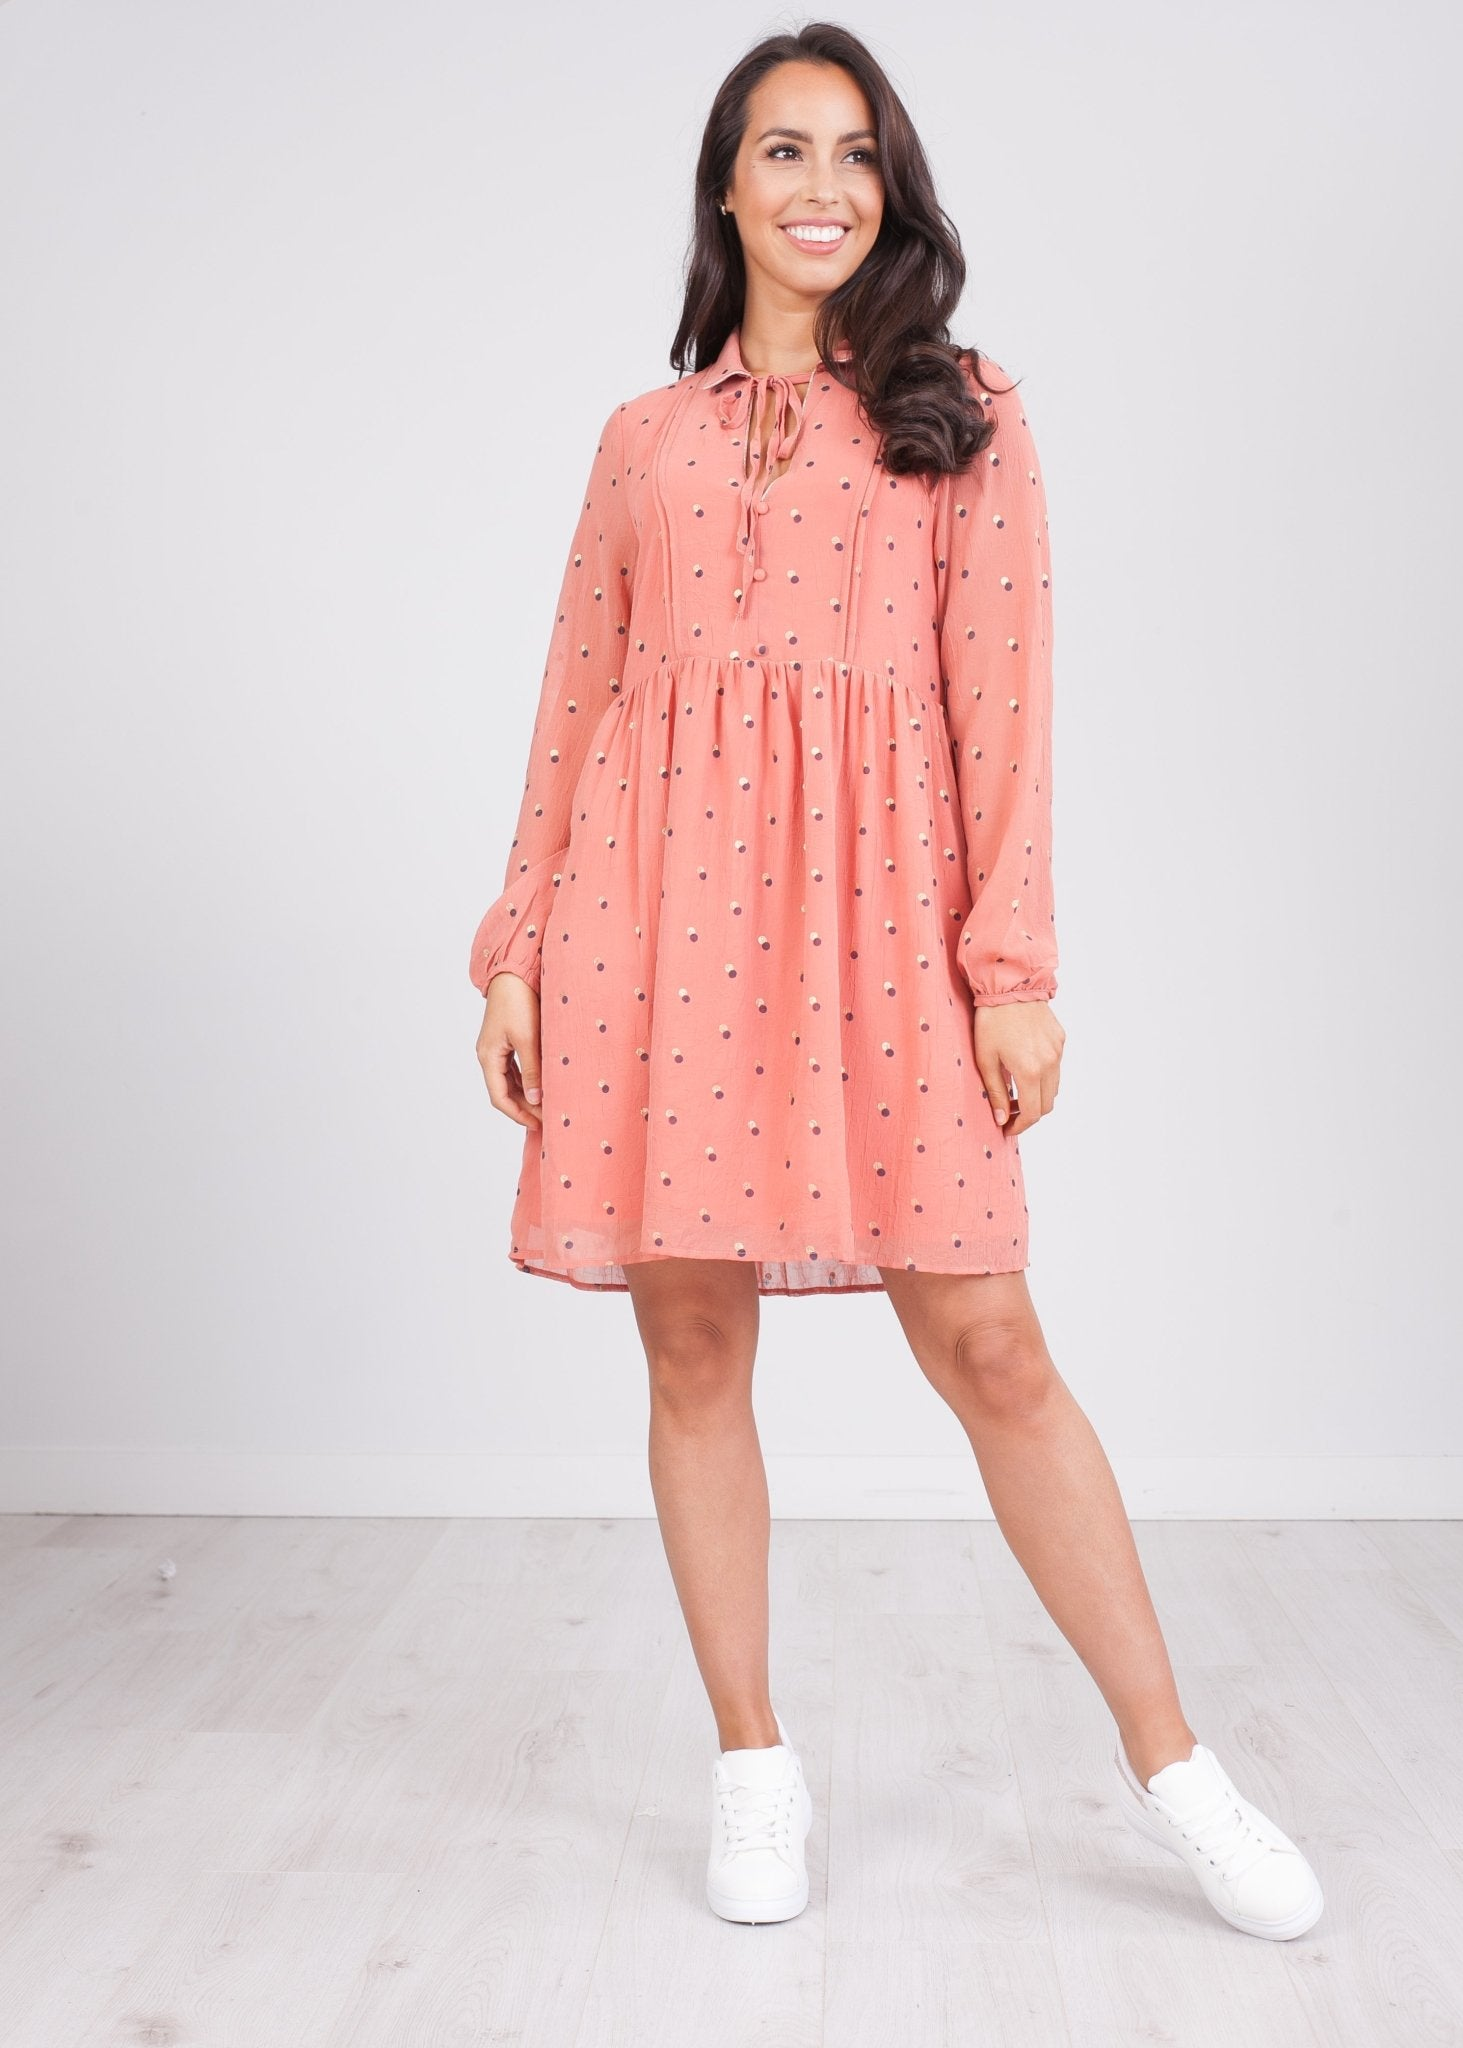 Cherie Rose Polka Dot Dress - The Walk in Wardrobe